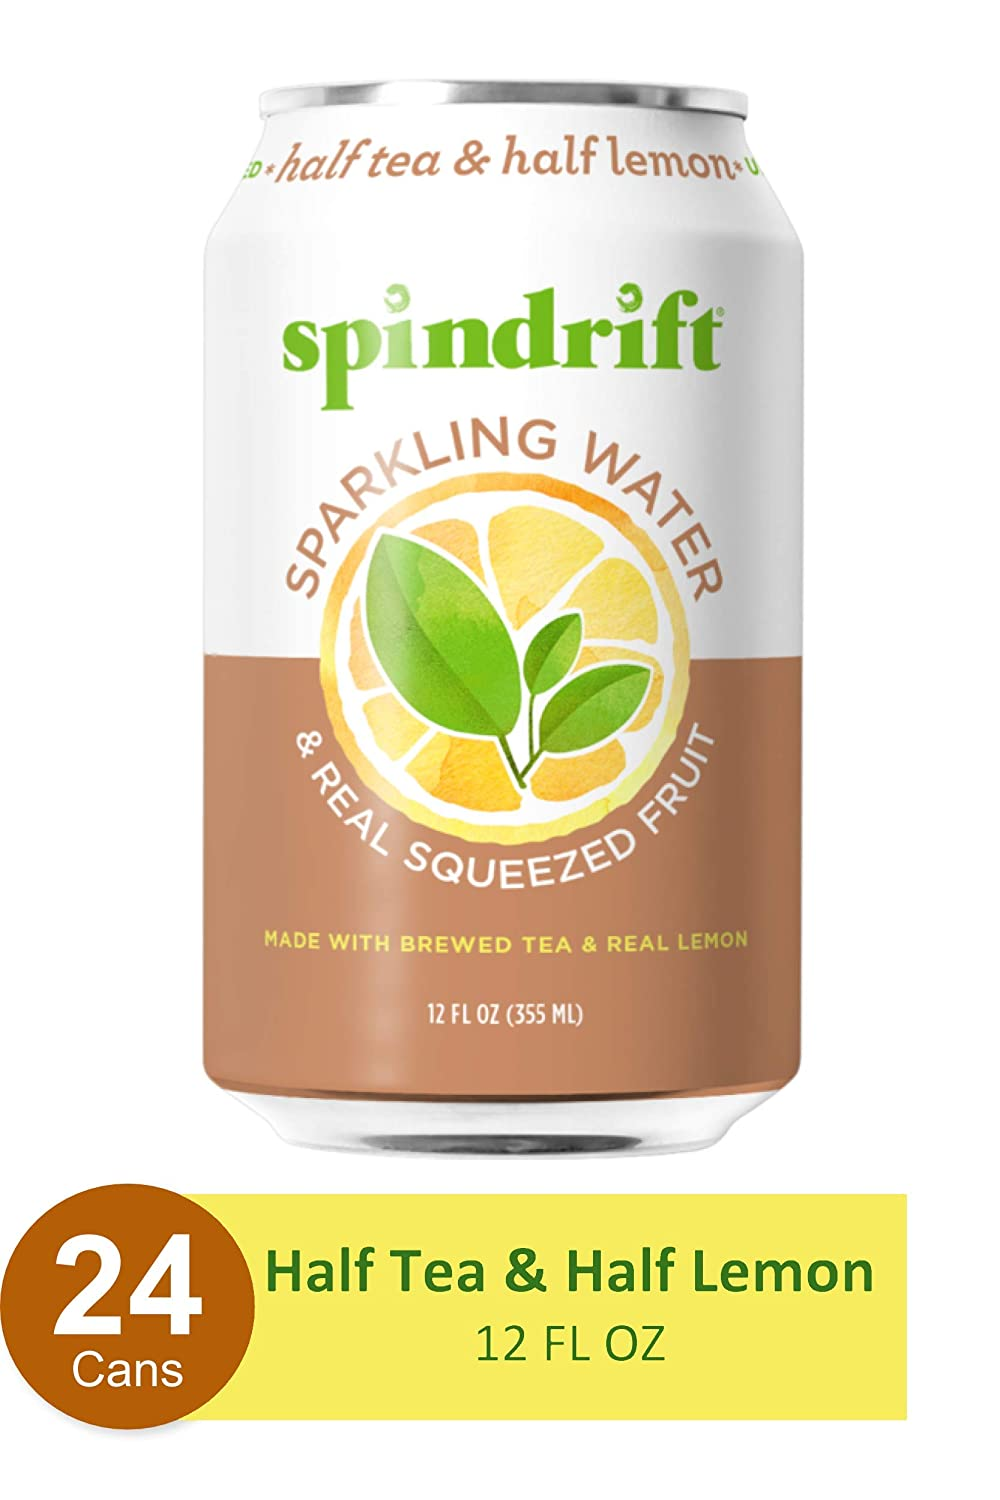 Spindrift Sparkling Water,Half Tea & Half Lemon Flavored, Made with Real Squeezed Fruit, 12 Fl Oz Cans, Pack of 24 (Only 5 Calories per Seltzer Water Can)